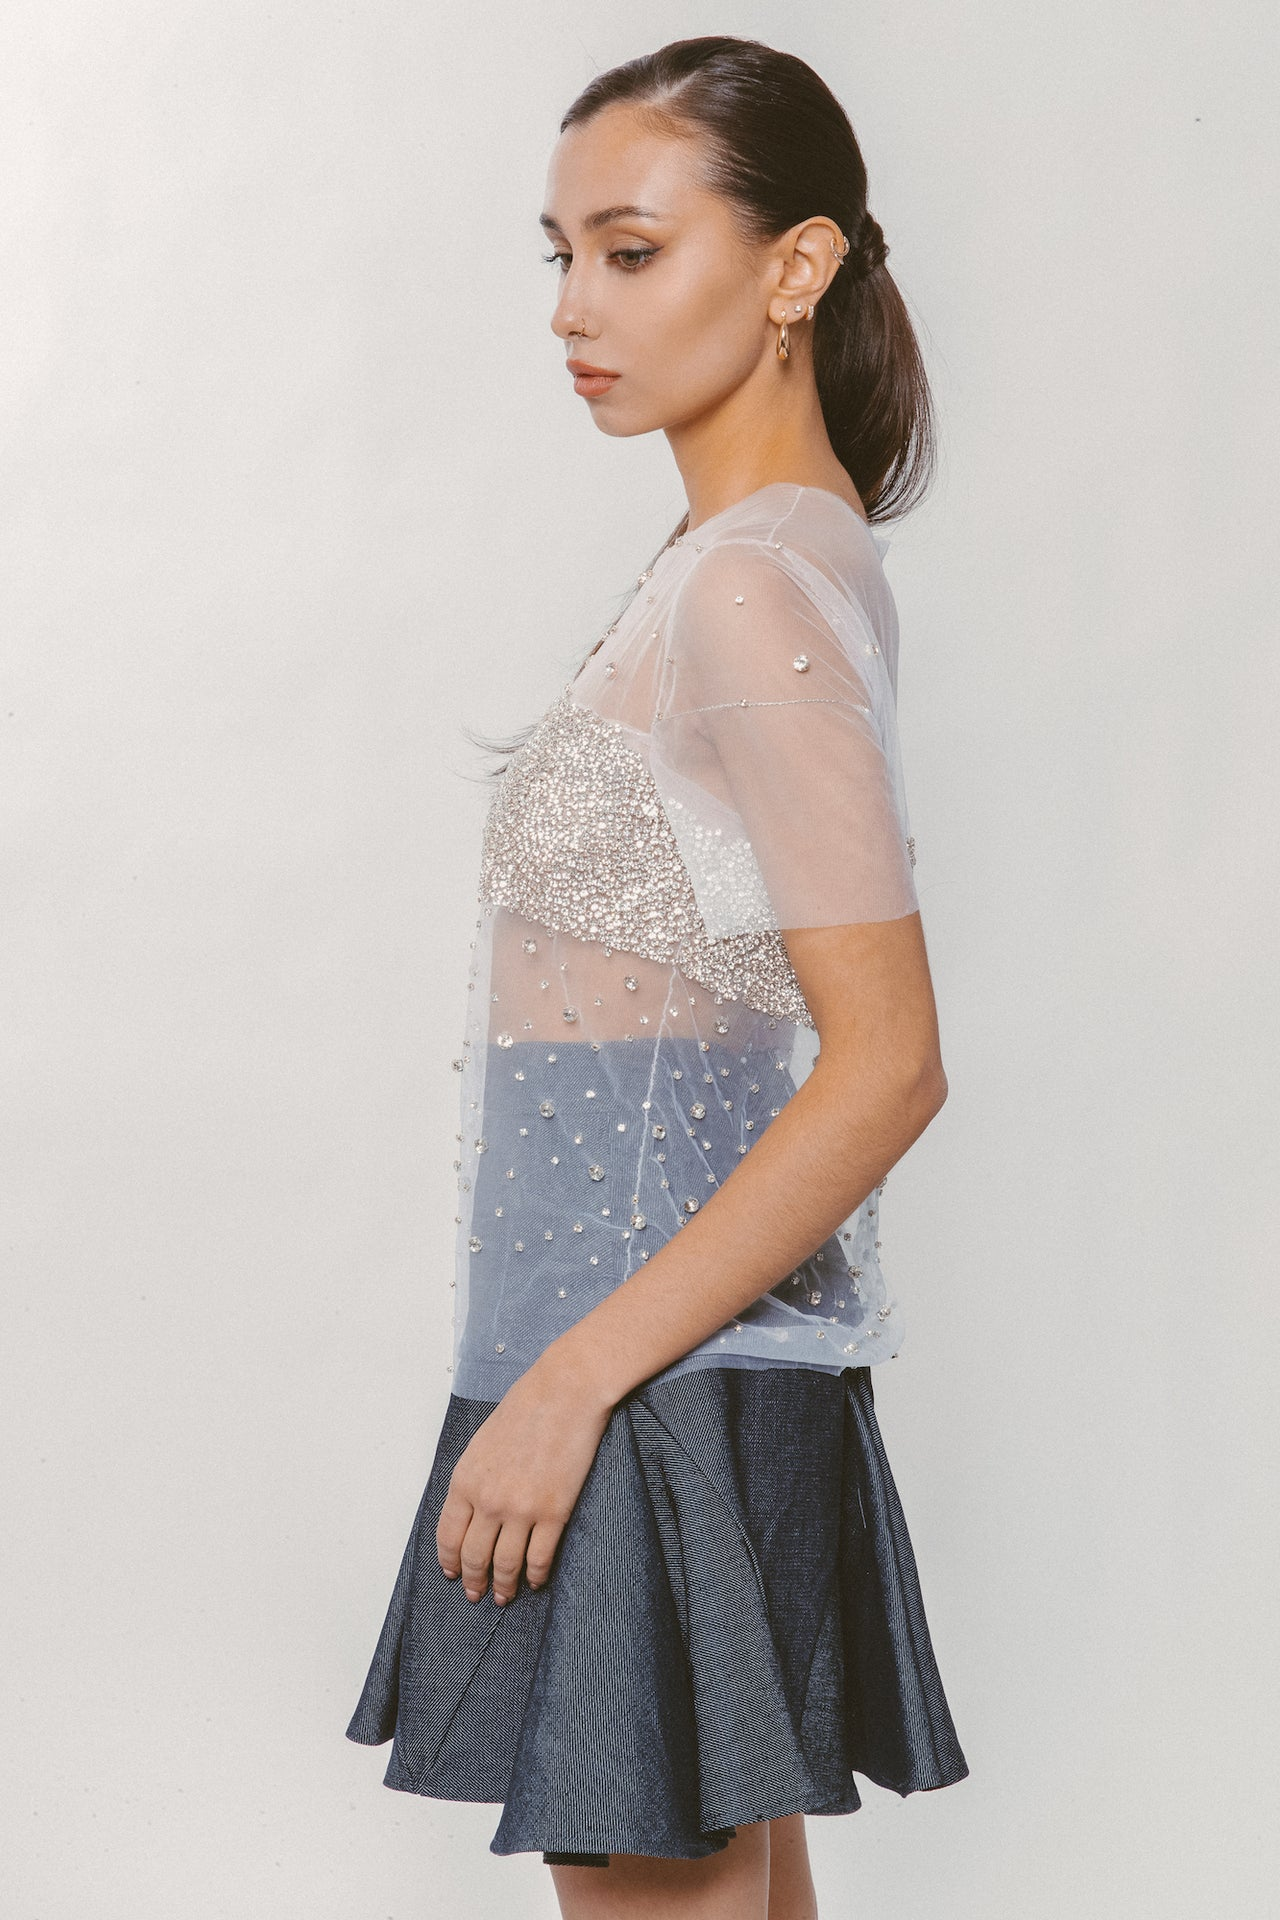 MOONLIGHT JEWELED BLOUSE - Lurelly